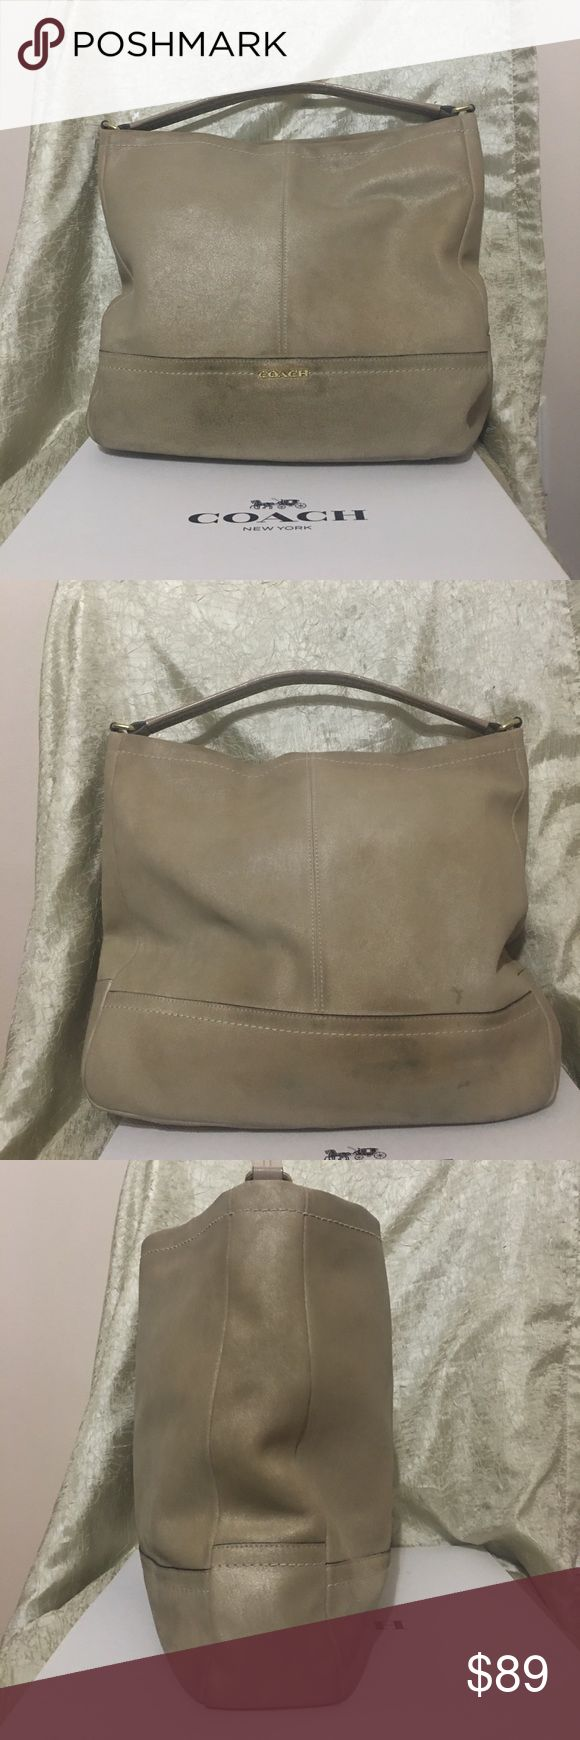 Coach Parke hobo You are looking at a beautiful authentic Coach Park side Hobo style # 37120 in the color of sand. The bag is made of a suede feeling brushed leather and has a short This bag is sand in color but has a gold flake to the color BEAUTIFUL BAG more of a gold to me. Does have some dirty spots that would most likely clean right up with the coach leather cleaner. Plastic coating on leather strap is starting to peel. Inside is perfect. Coach Bags Hobos